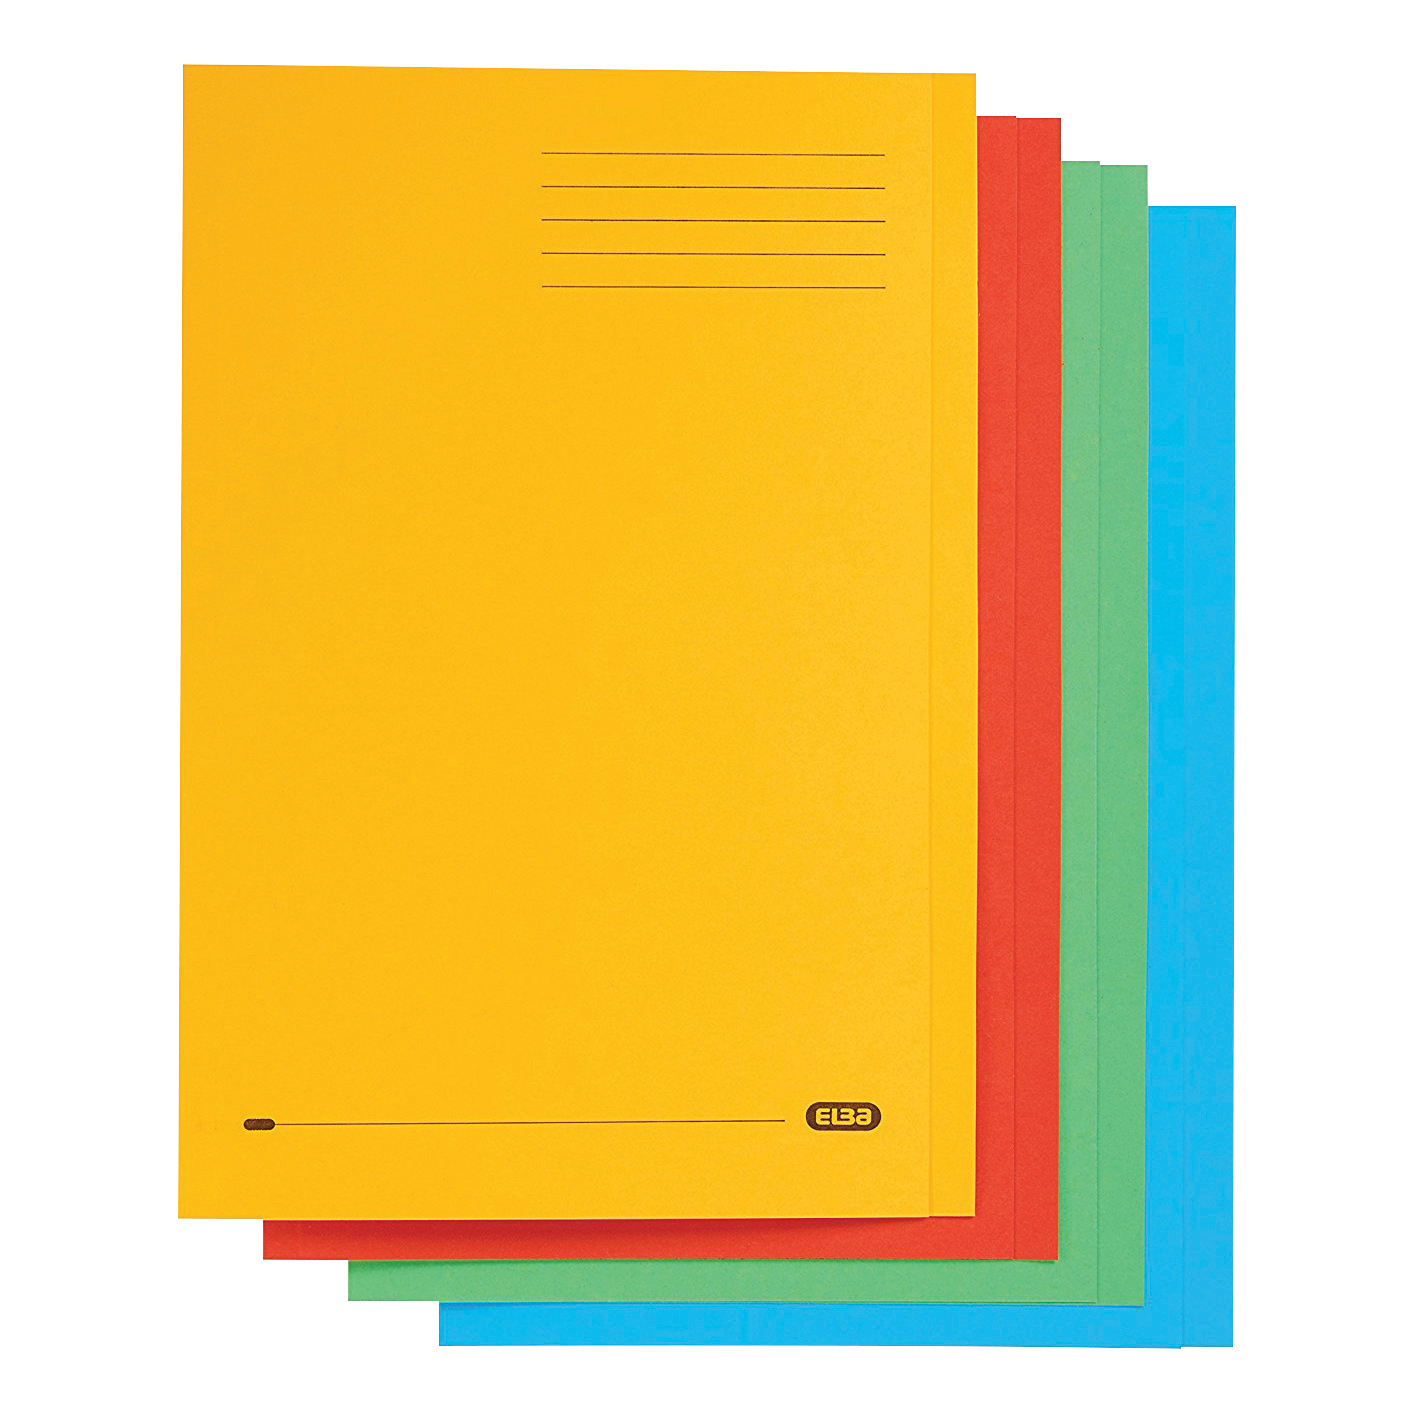 Elba StrongLine Square Cut Folder 320gsm 32mm Foolscap Assorted Ref 100090267 [Pack 50] [REDEMPTION]